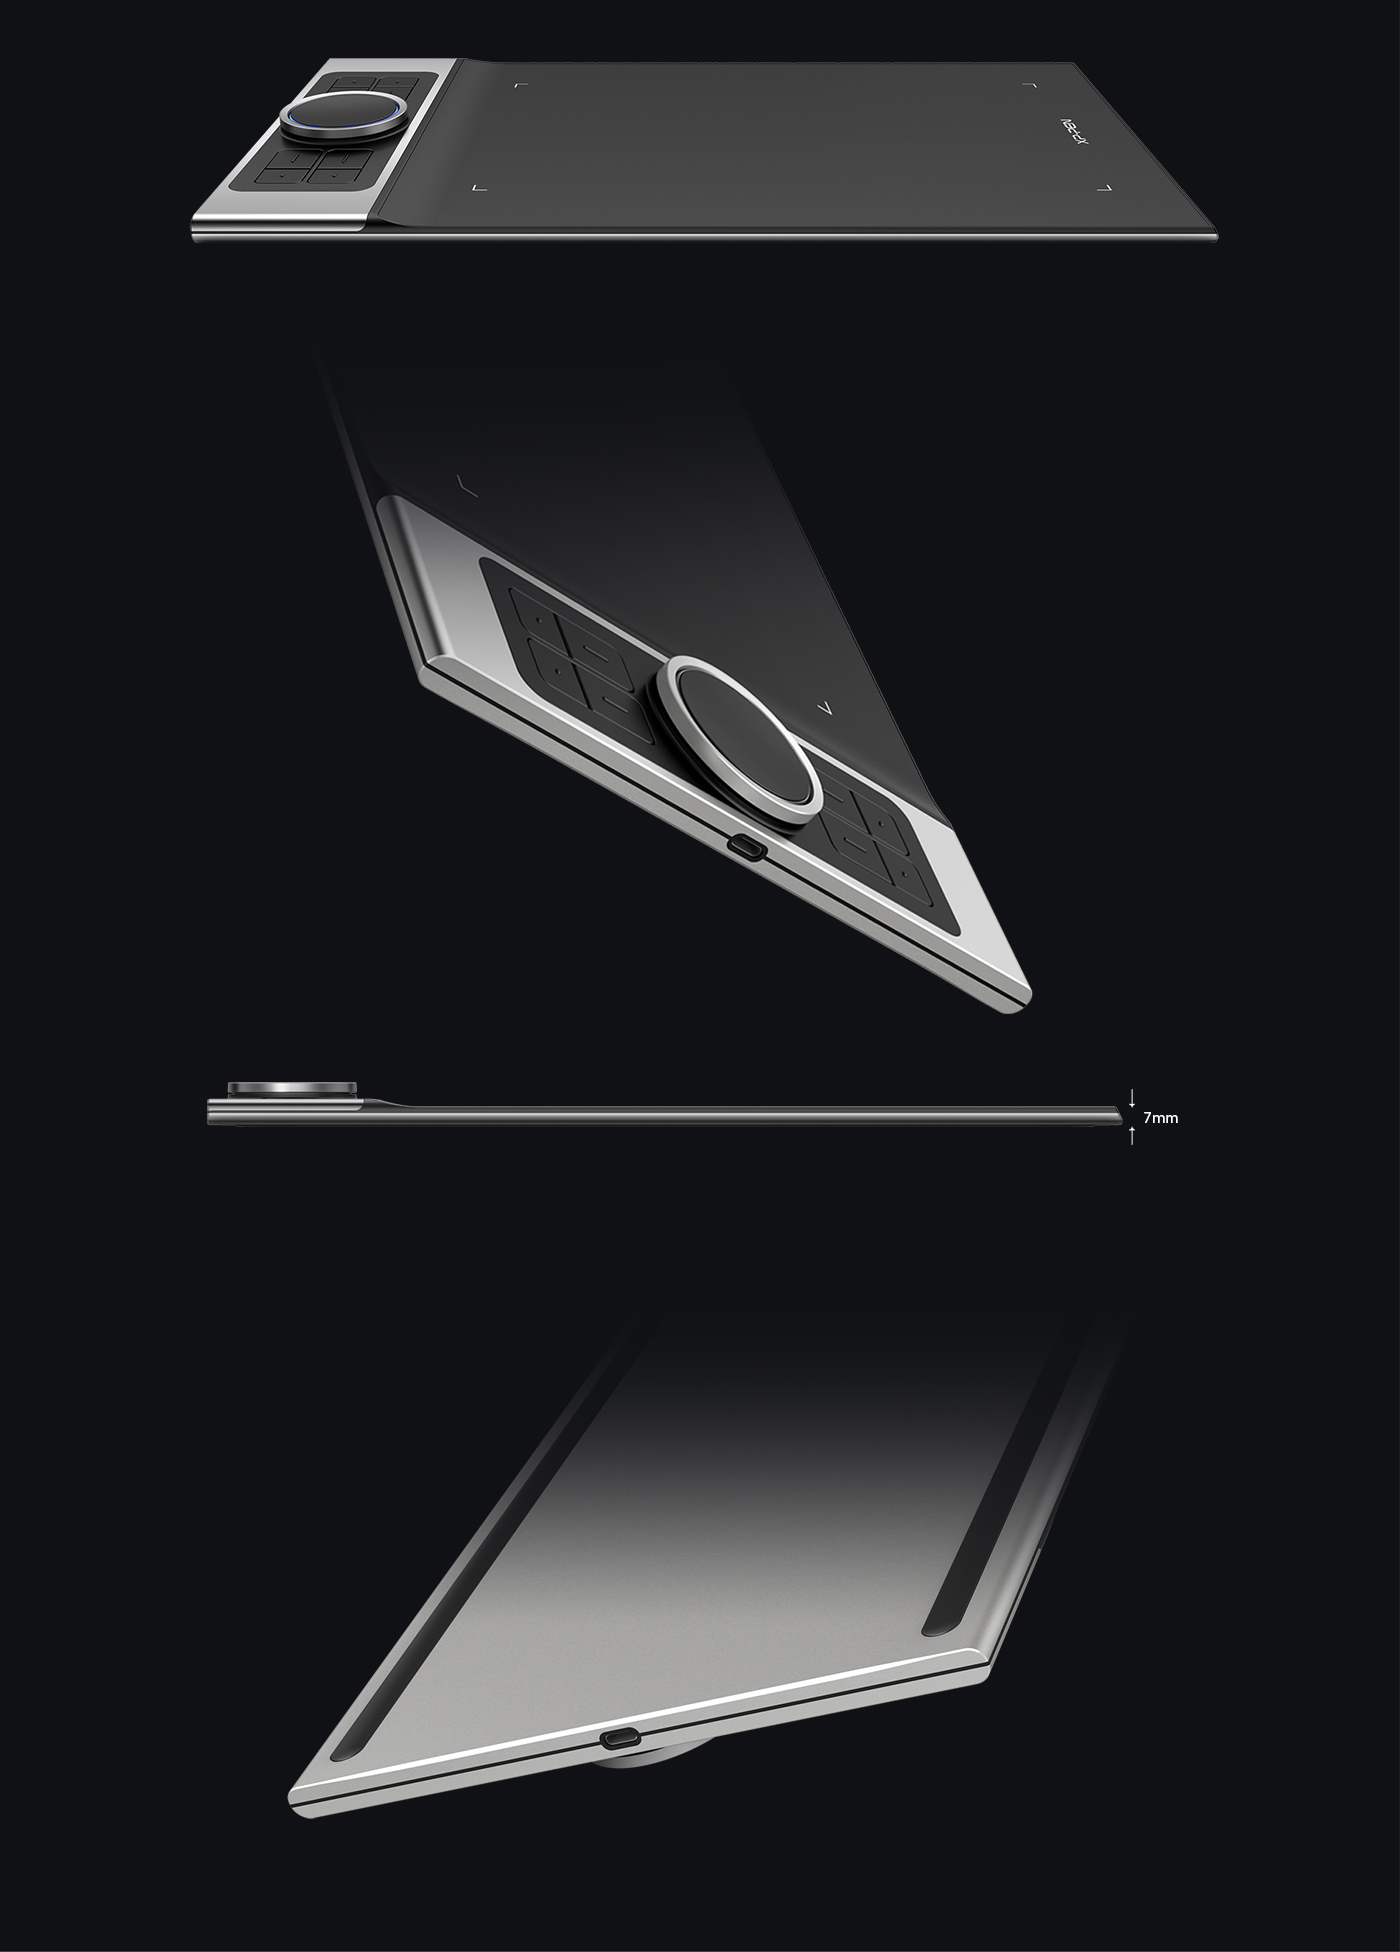 XP-Pen Deco Pro Series Android Drawing Tablet is crafted with an aluminum casing and features a 7mm thin curved casing